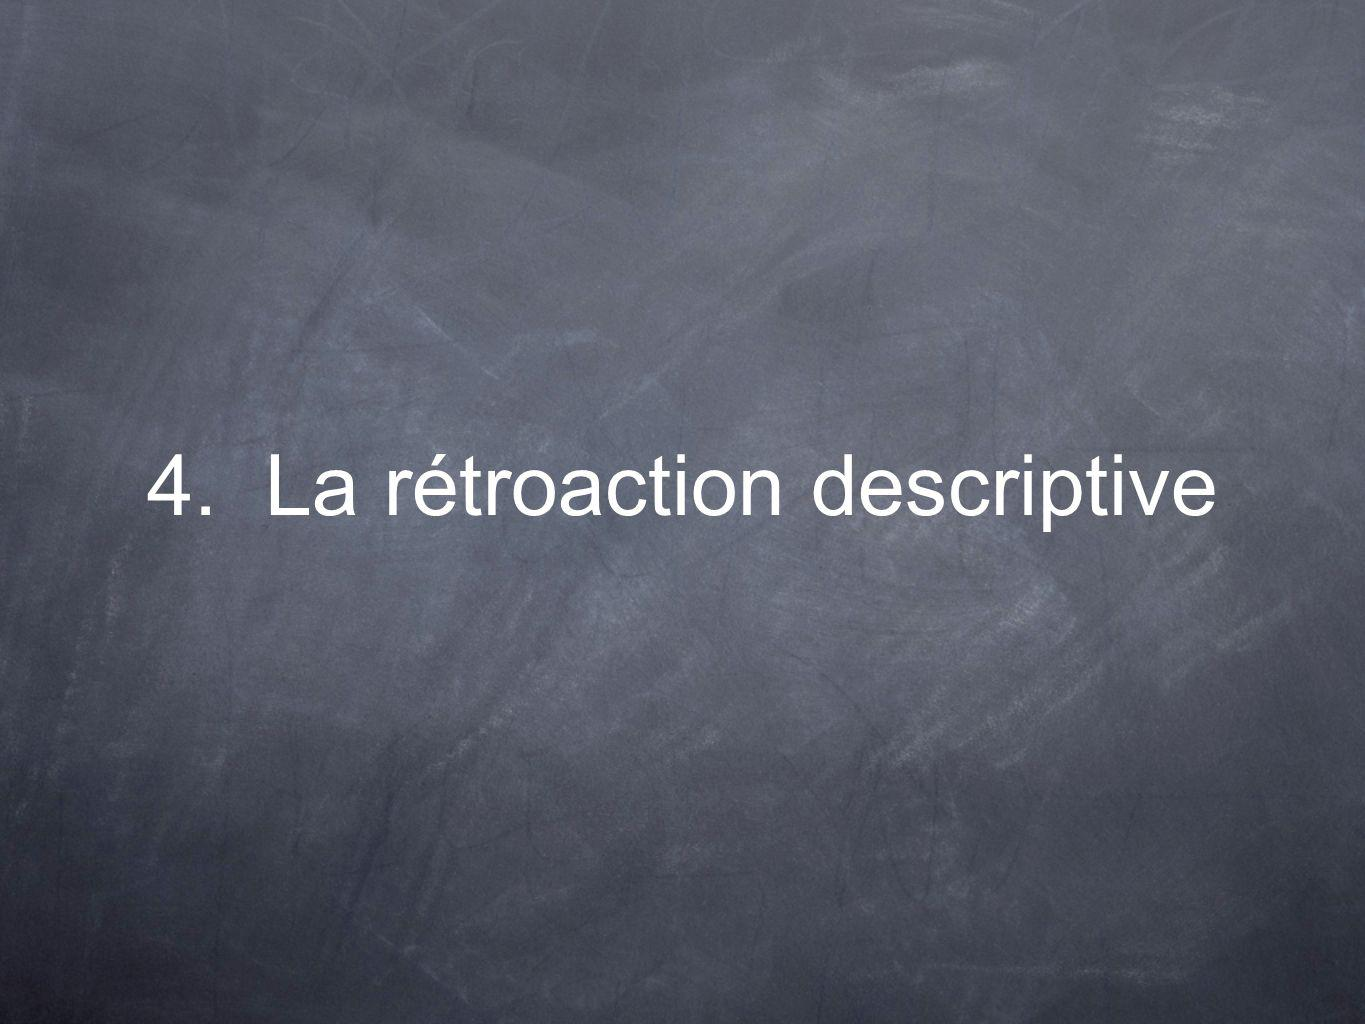 4. La rétroaction descriptive